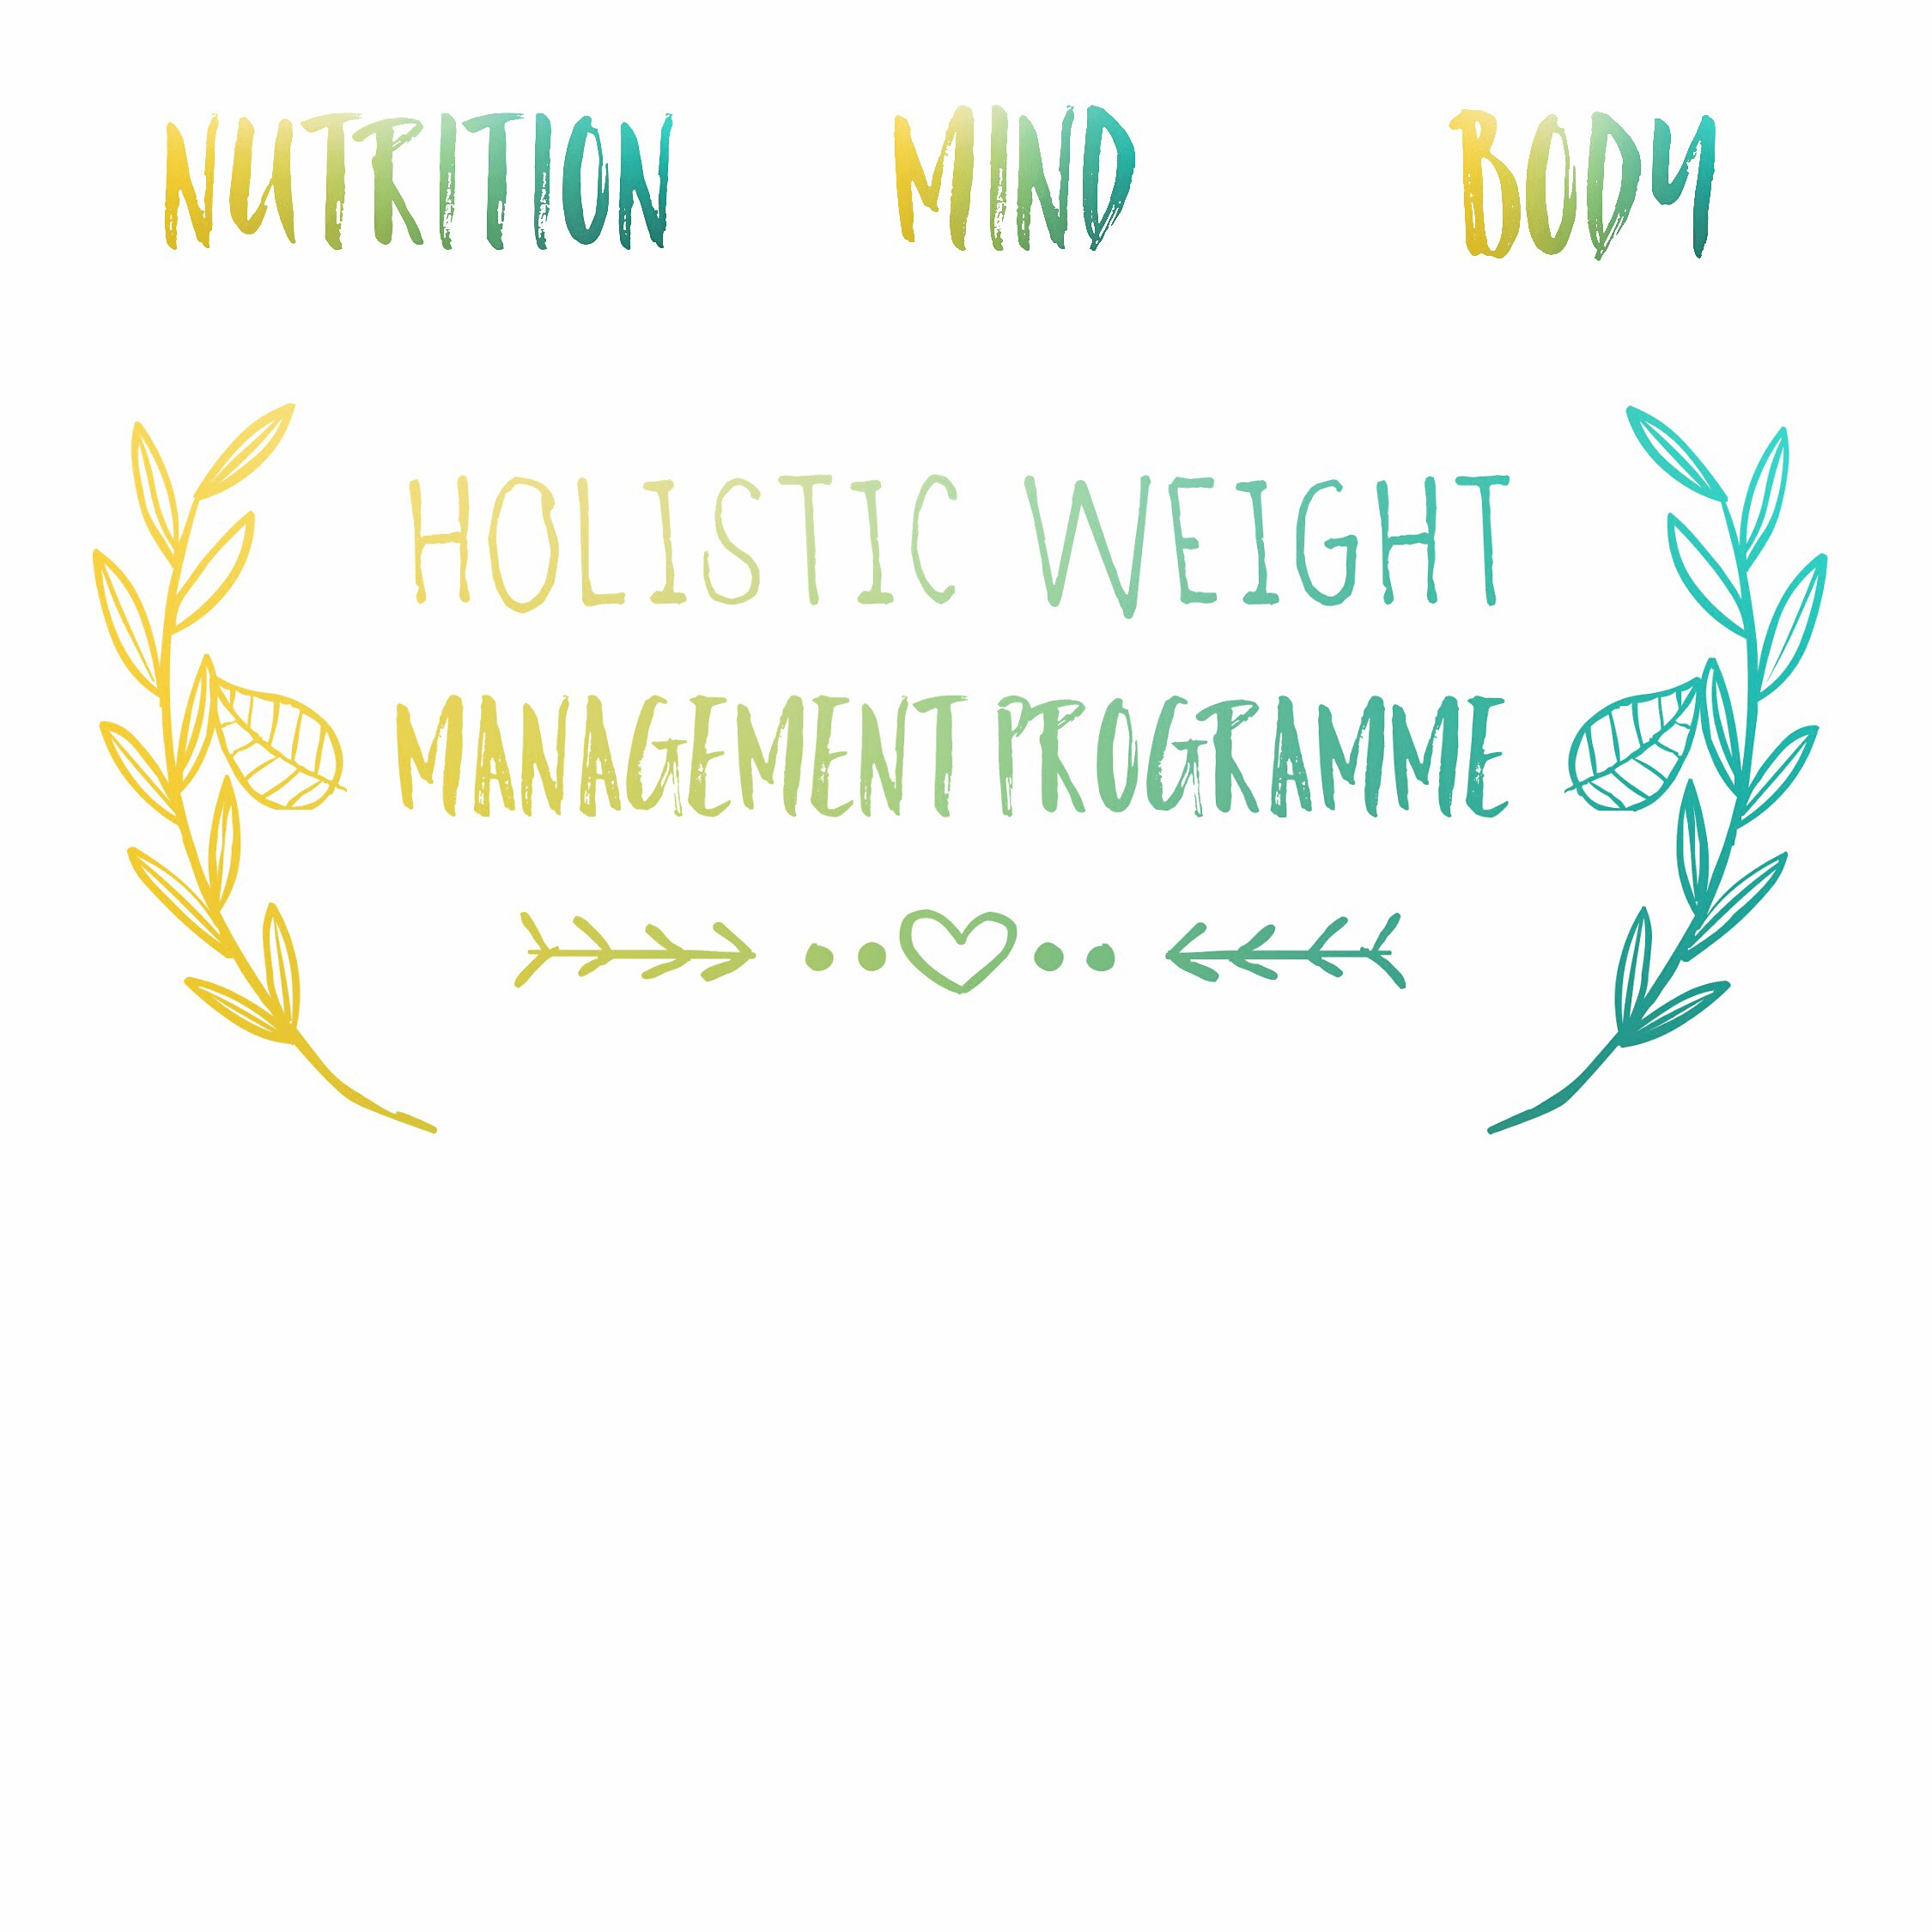 NEW Holistic Weight Management Programme